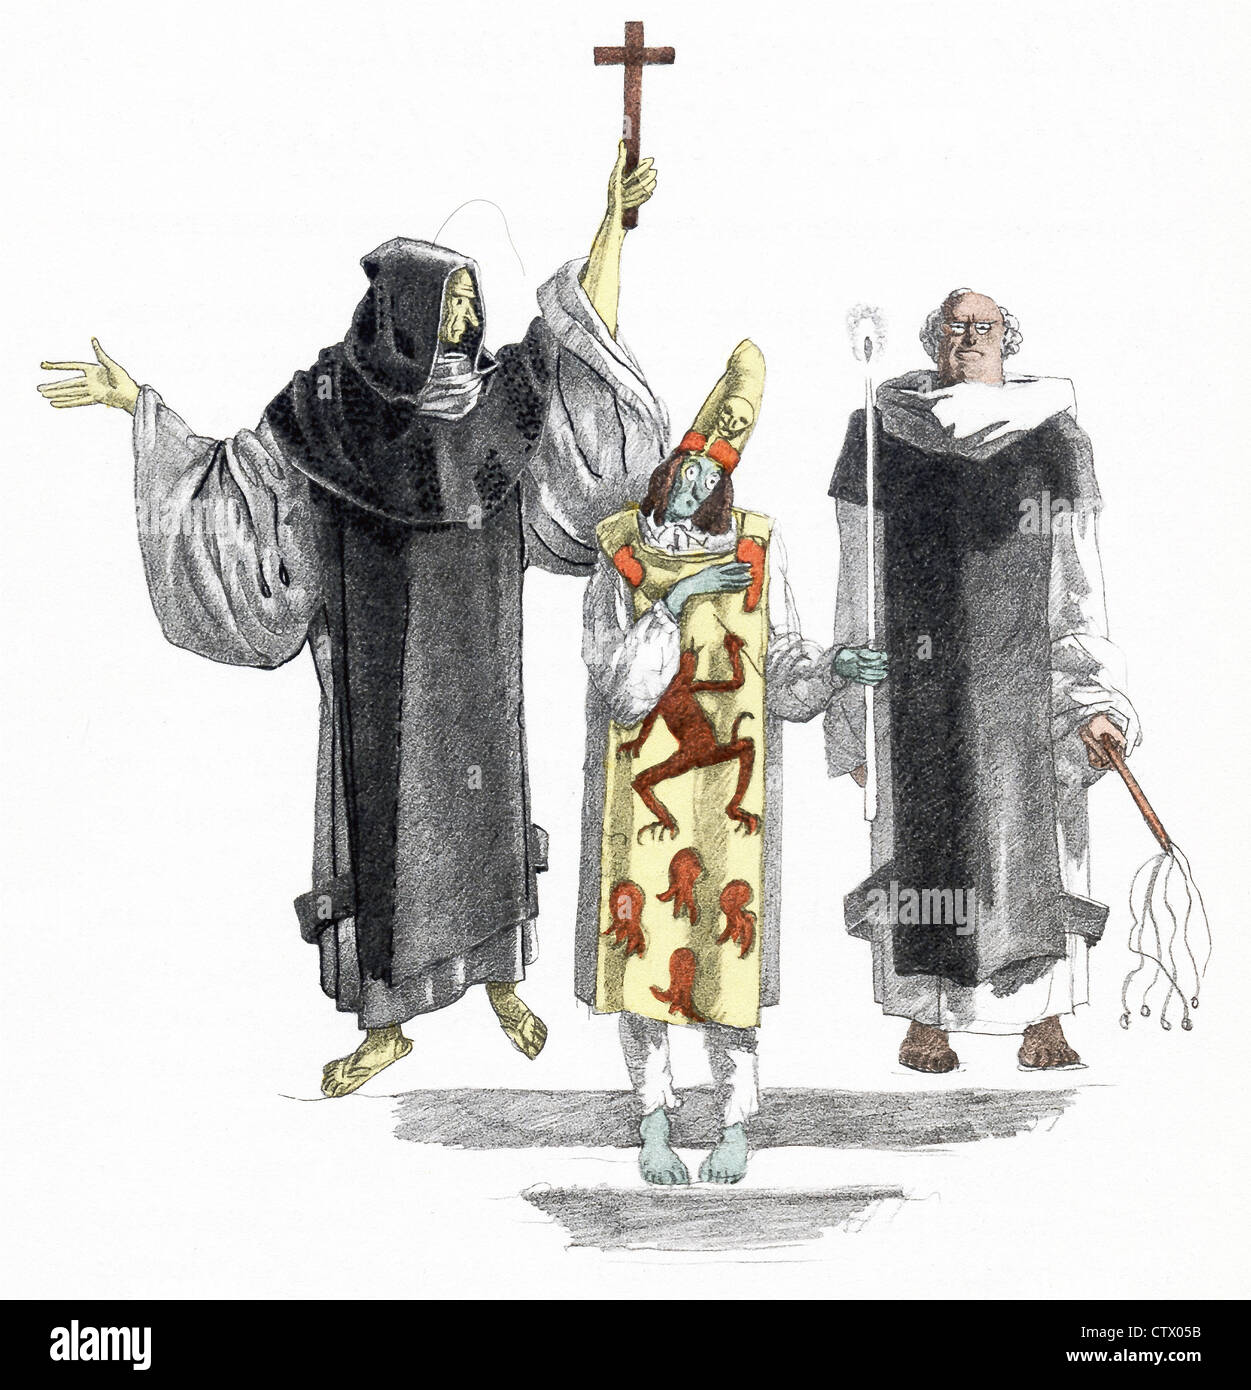 The novel figure Candide stands here as a heretic, with two clergymen, as part of Auto da Fe in Lisbon. - Stock Image